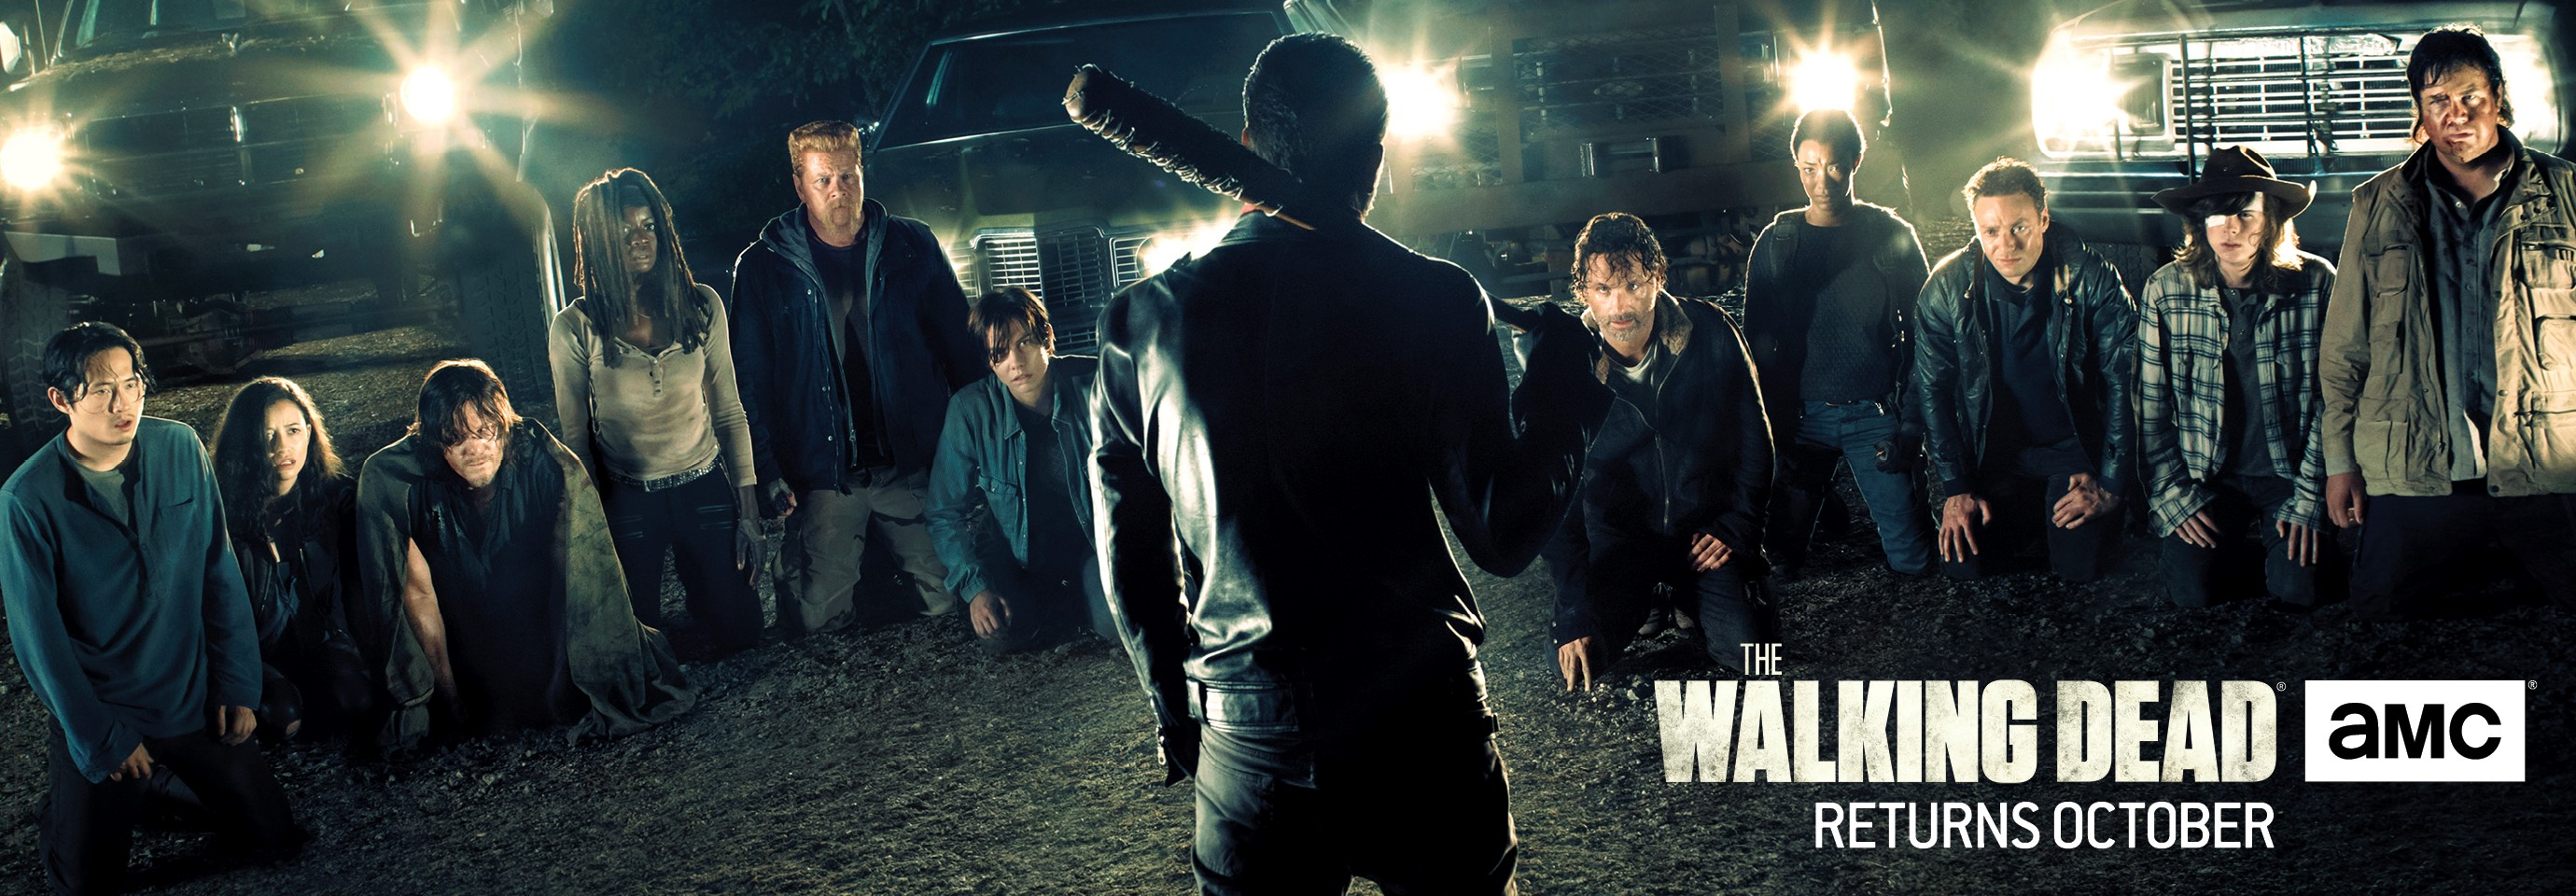 The.Walking.Dead.S08E15.WEBRip.x264.HUN-nIk